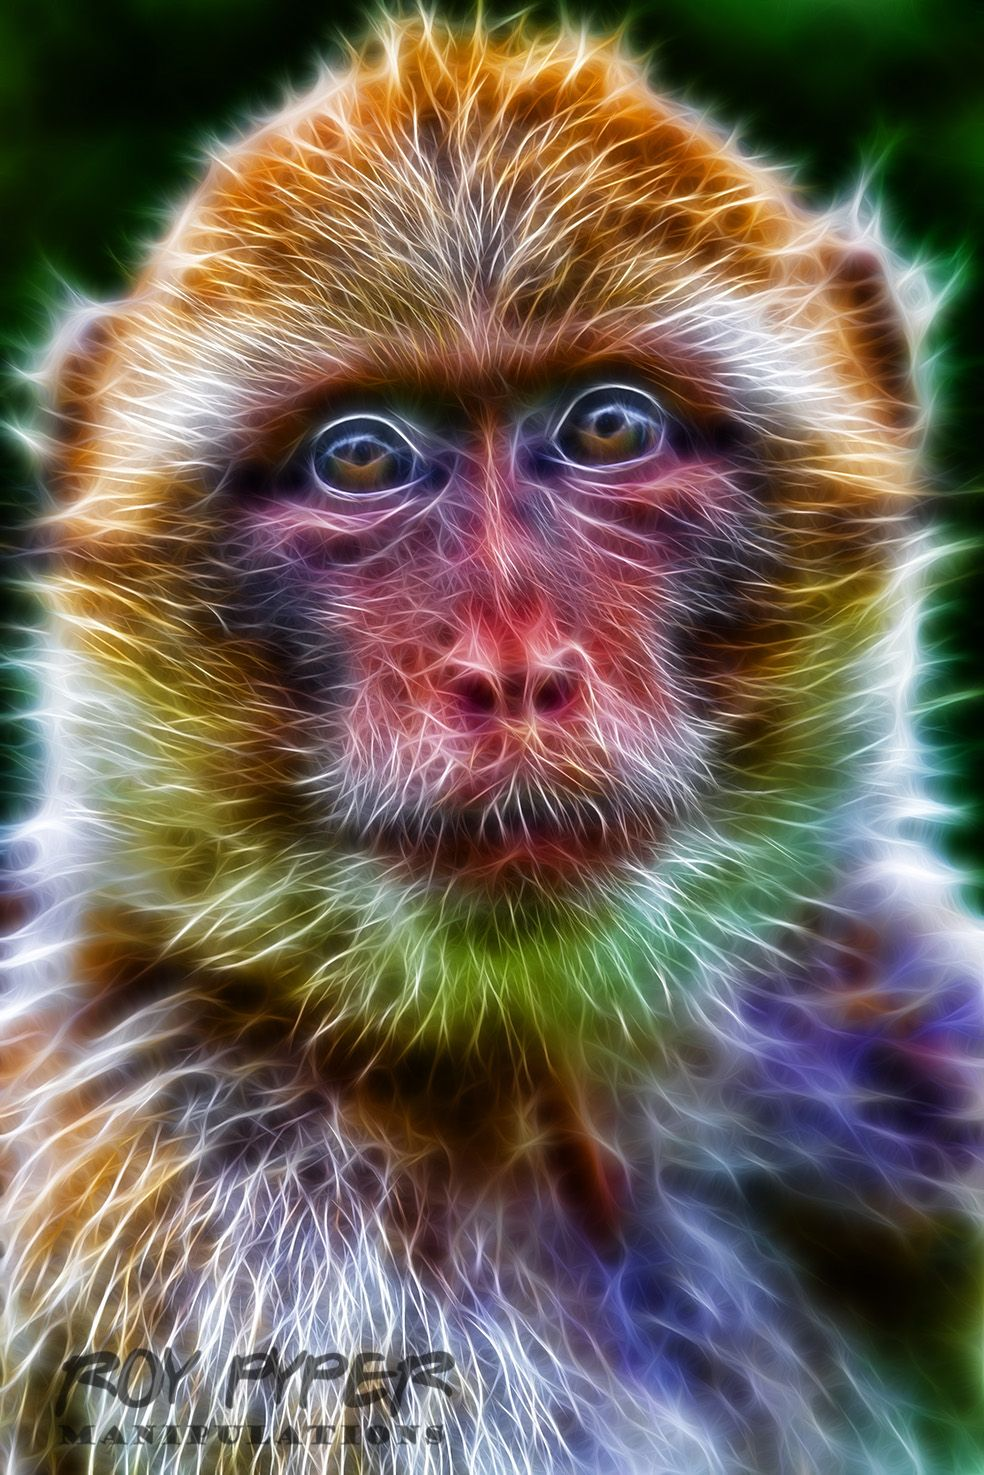 Macaque Monkey Fractalius Re Edit By Nerdboy69 On Deviantart Images, Photos, Reviews